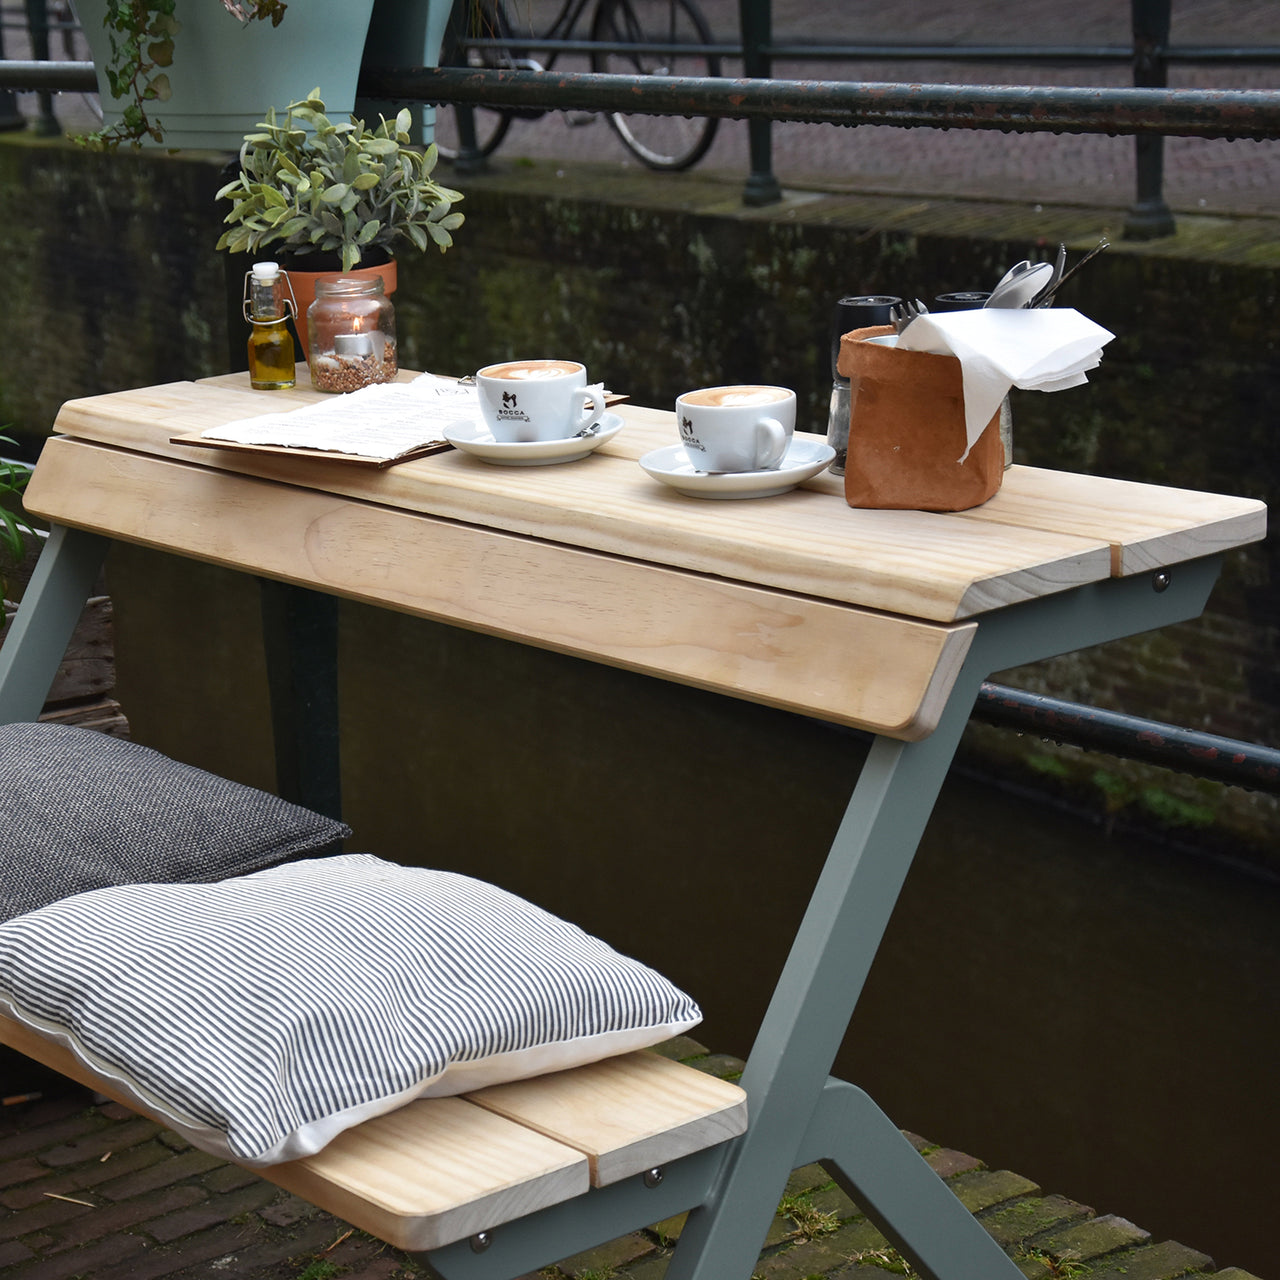 Tablebench 2-Seater